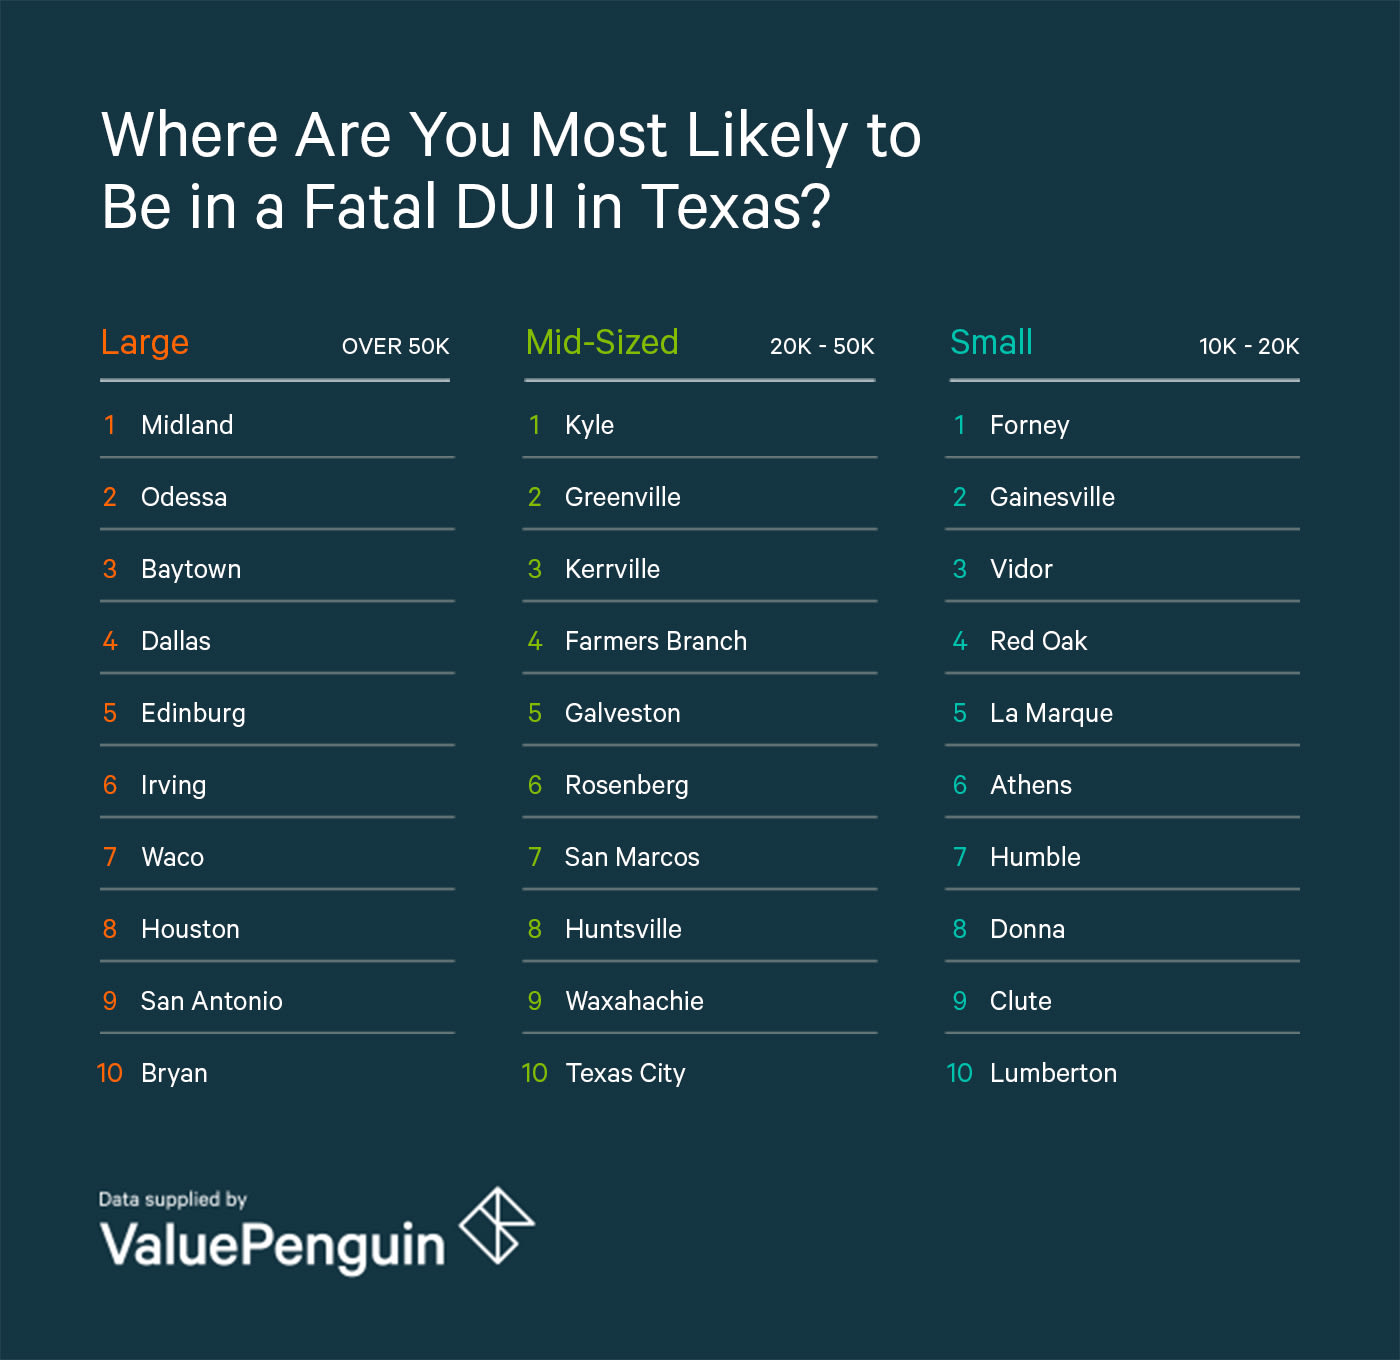 A Graphic Of The Most Dangerous Cities In Texas For DUI Fatalities Grouped by Size